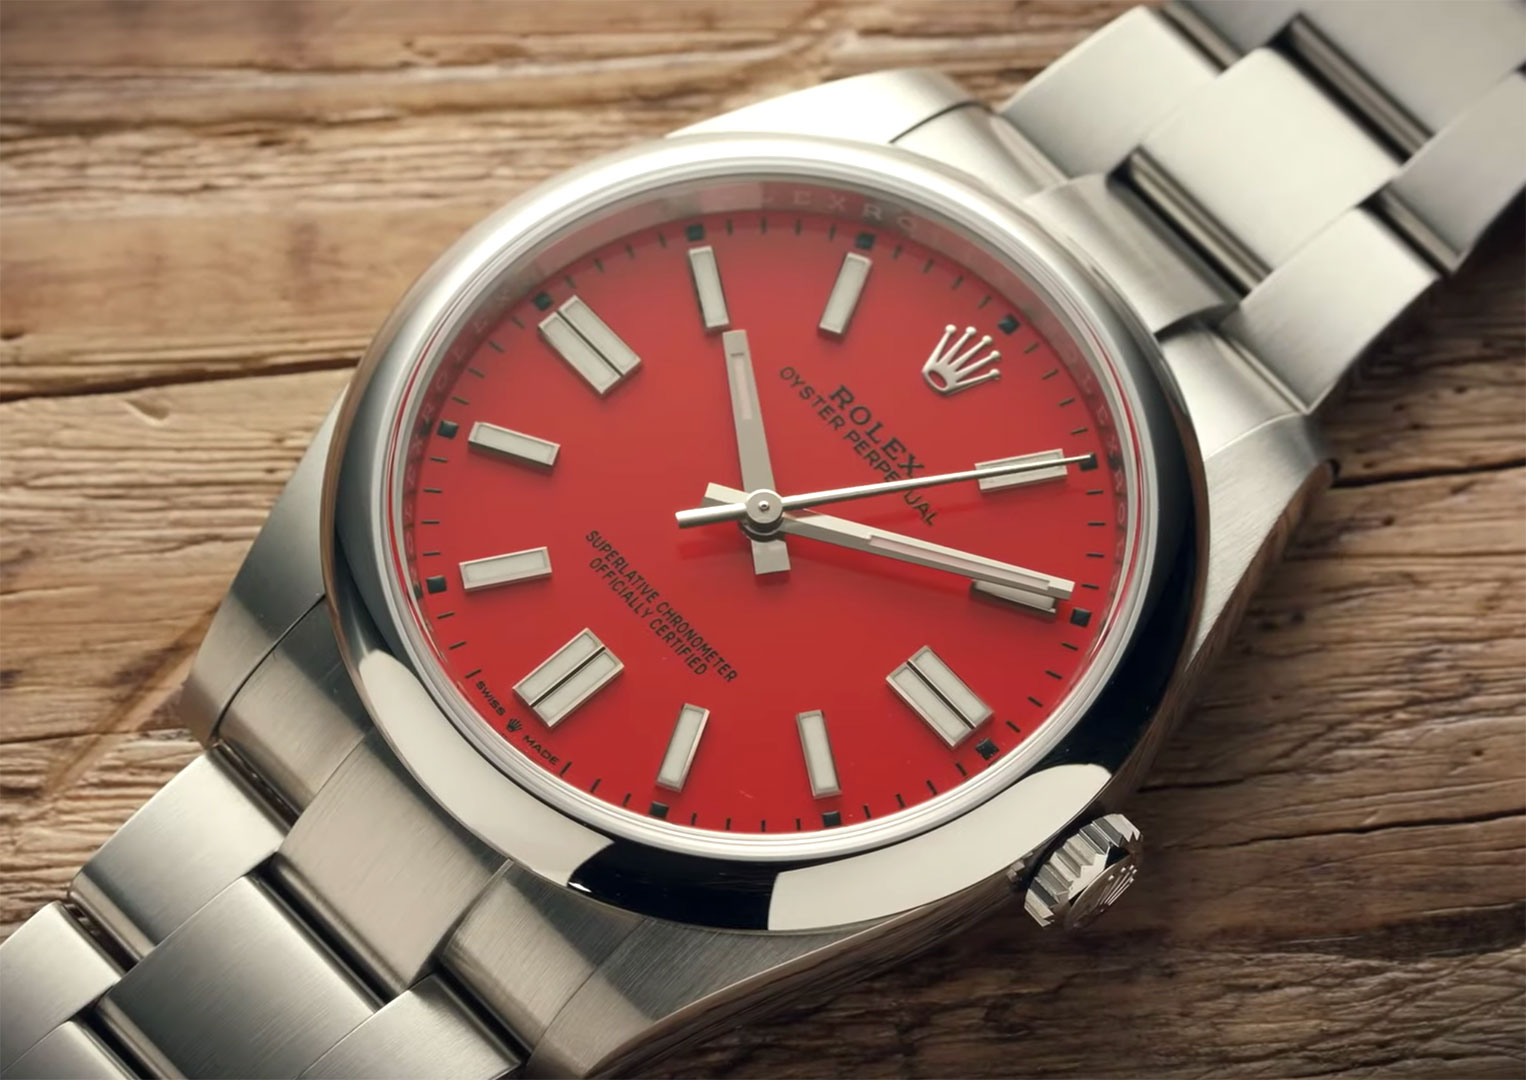 Founded in 1905, Rolex was originally called Wilsdorf and Davis after it's founders Hans Wilsdorf and Alfred Davis